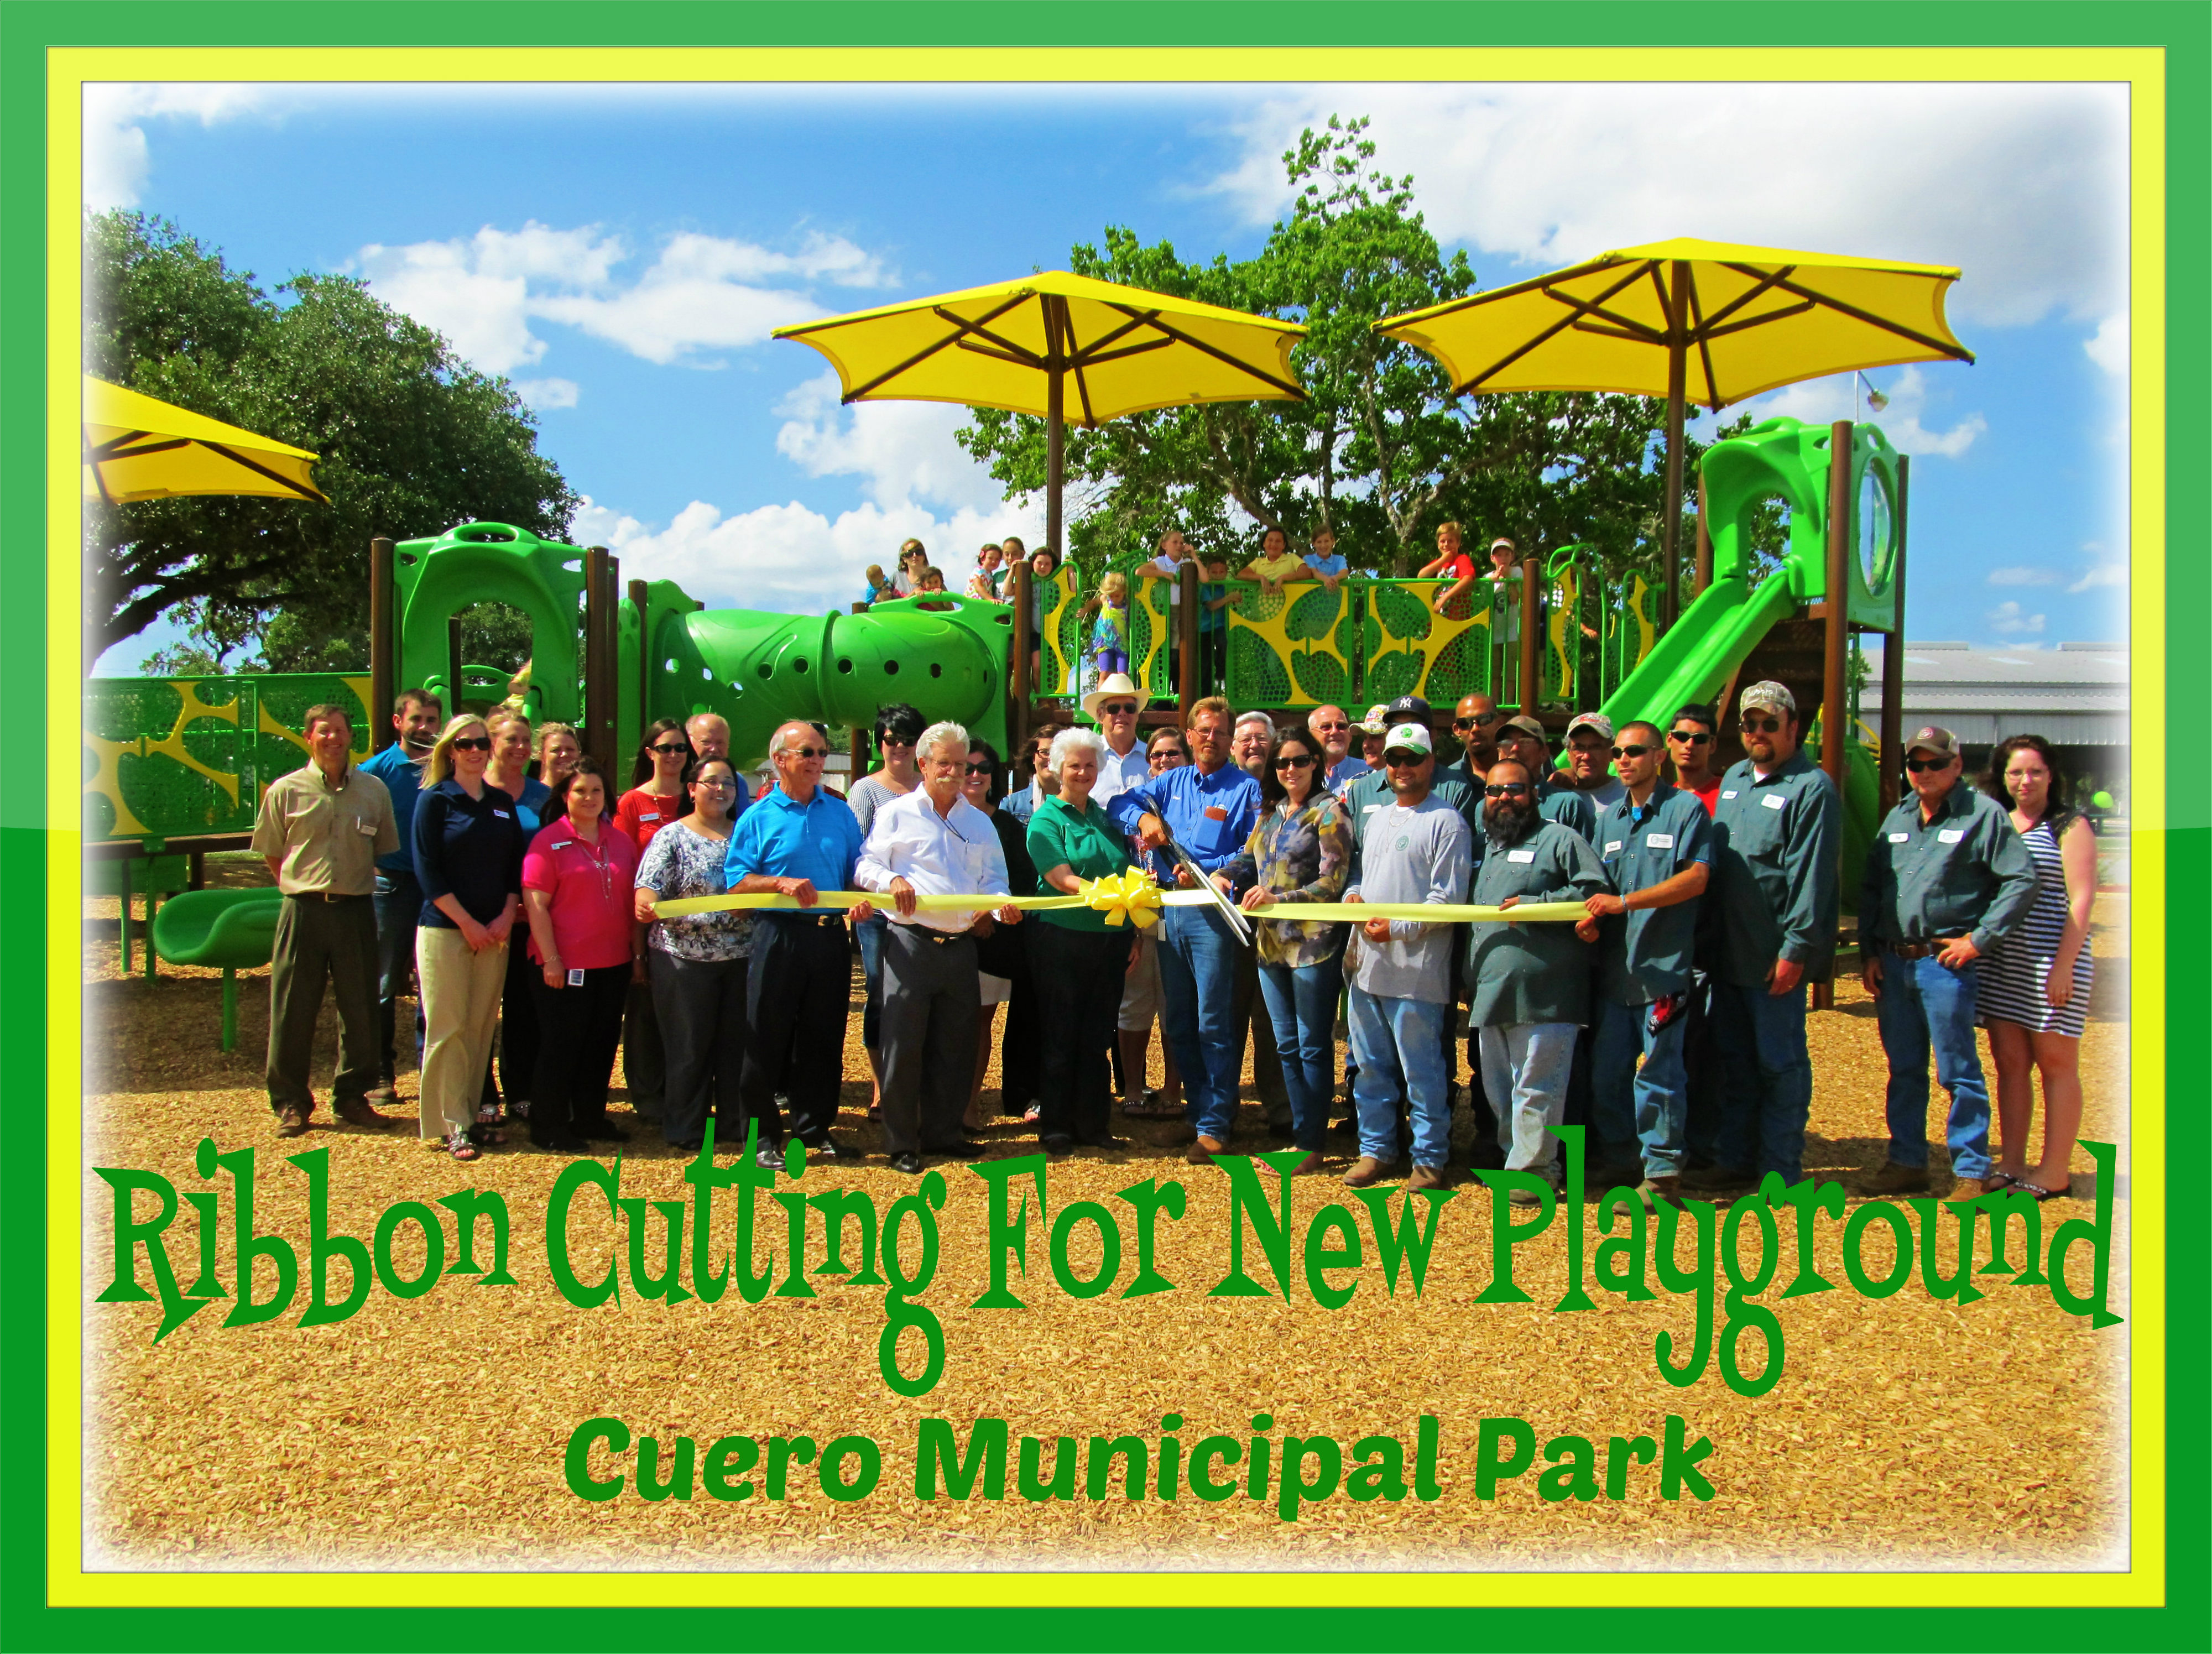 Playground Ribbon Cutting Framed with Font.jpg